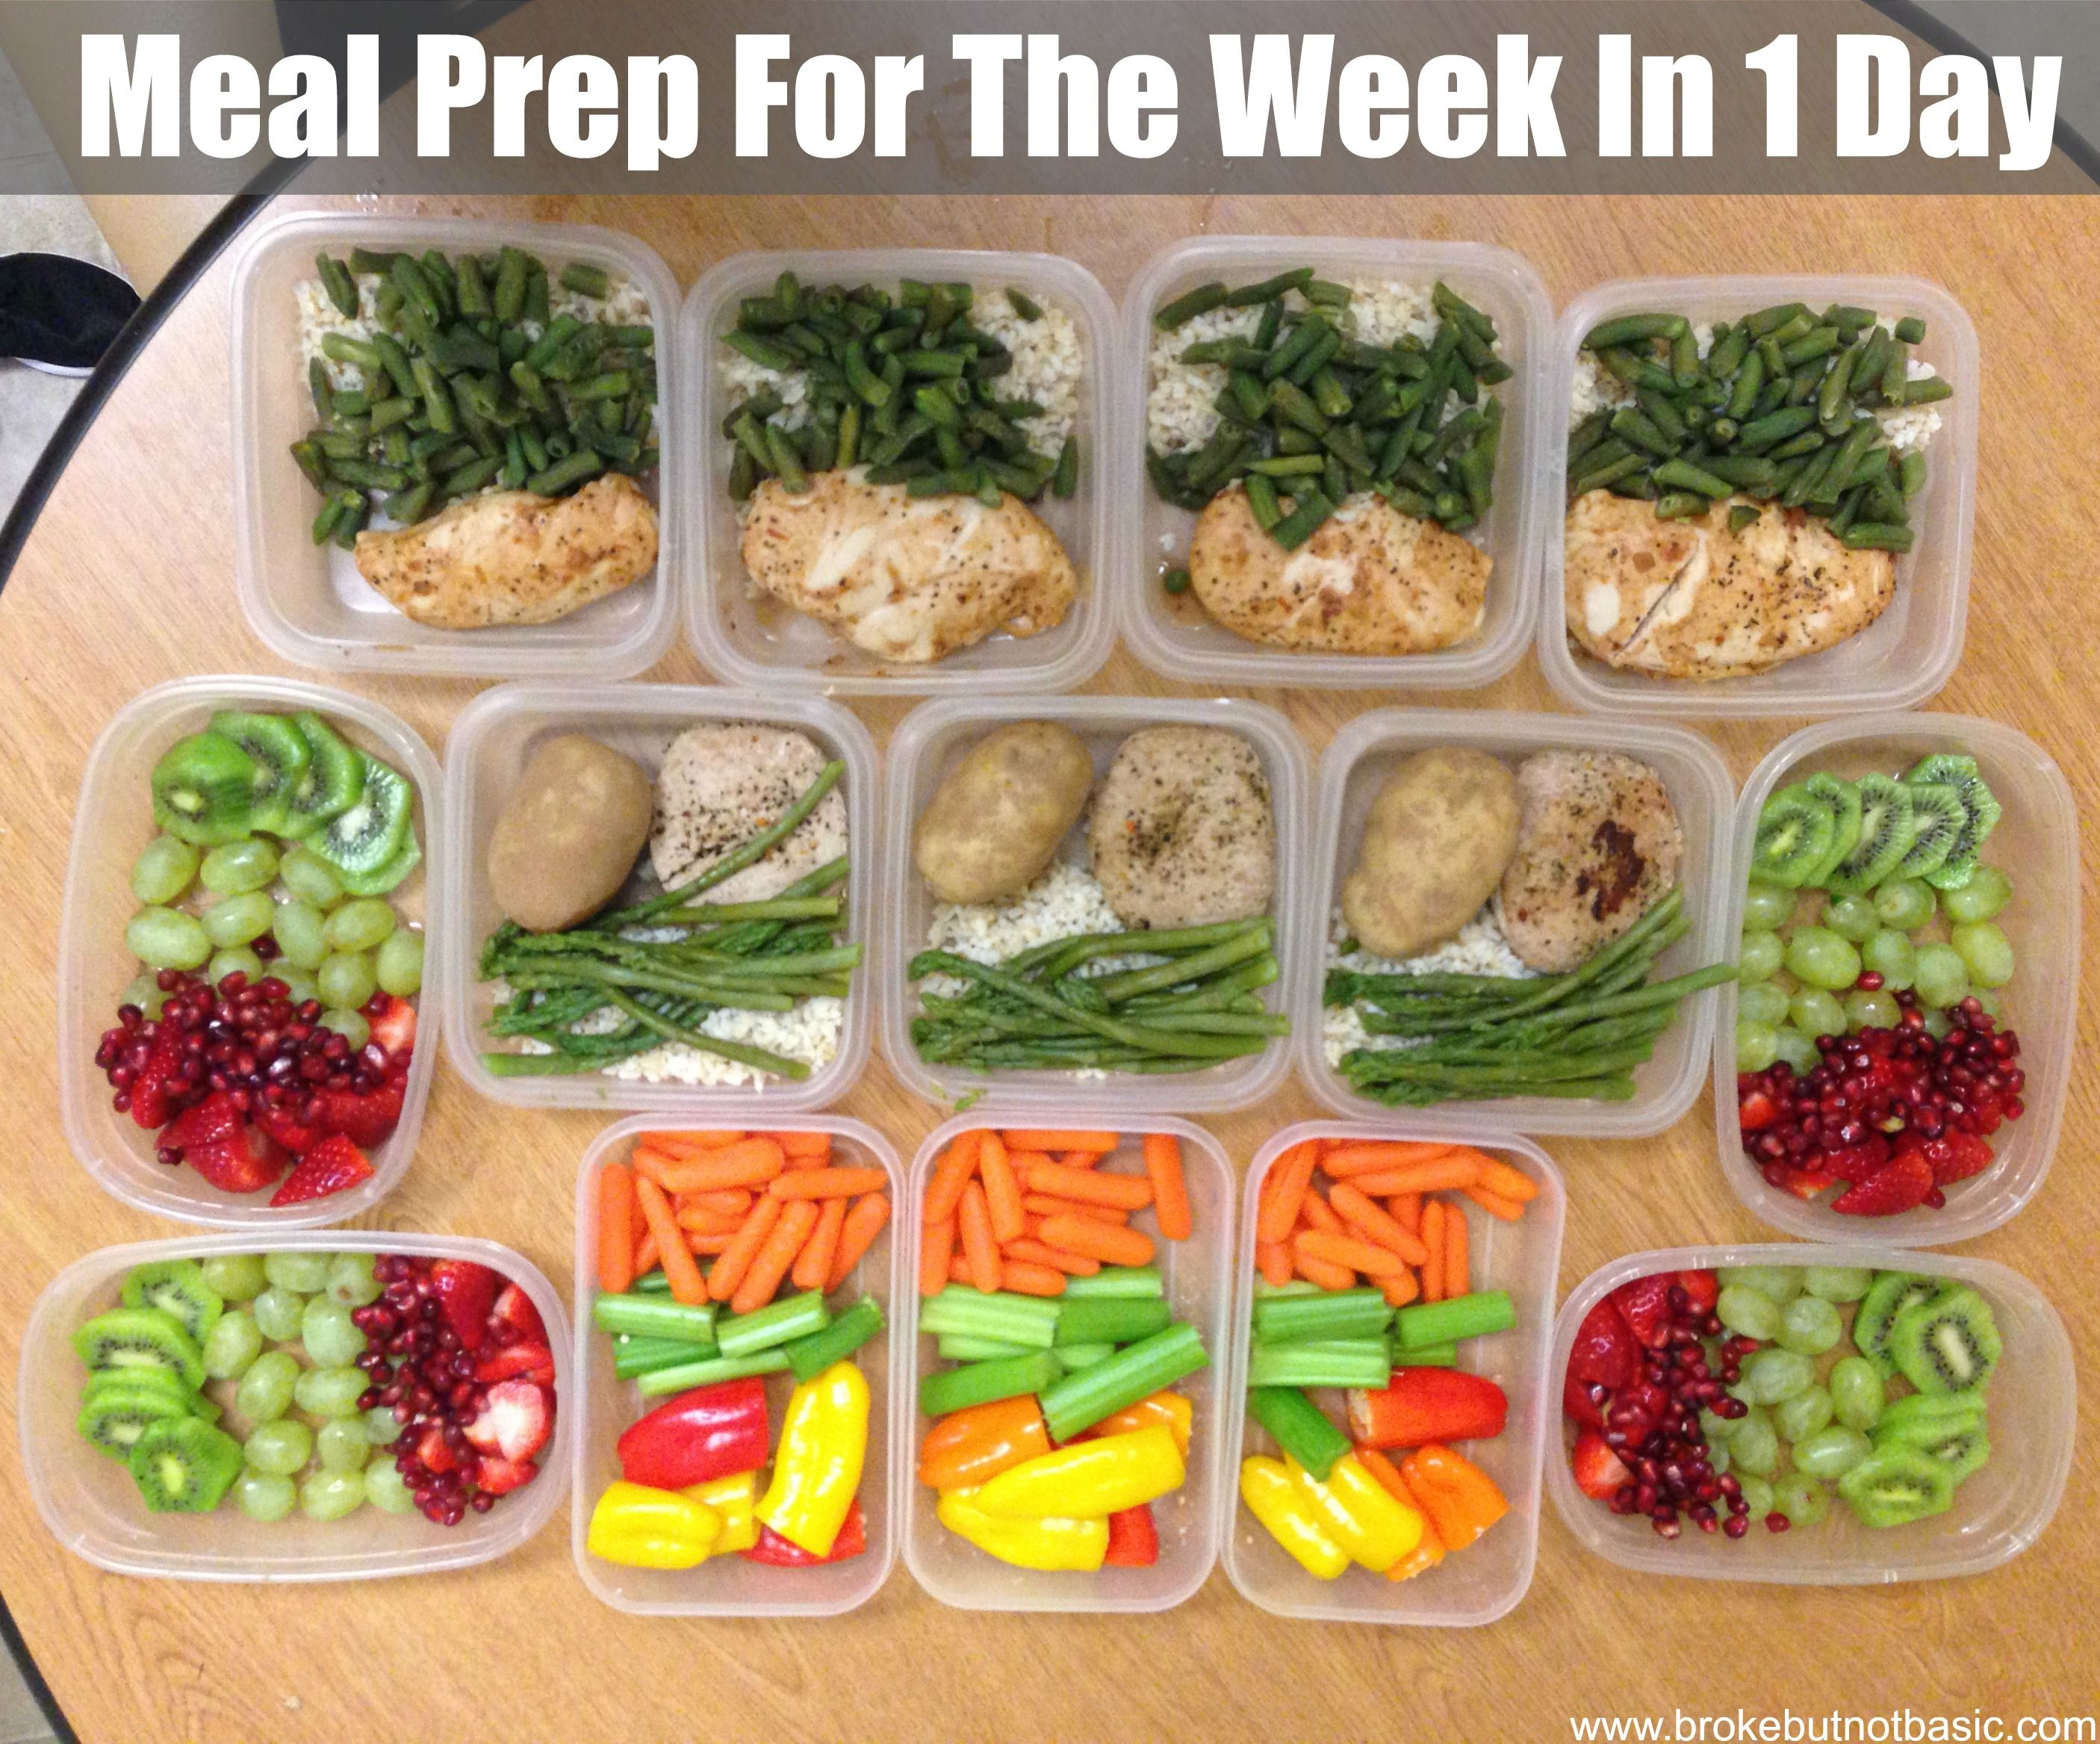 Meal Prep 101: Meal Prep For The Week In 1 Day  Broke But Not